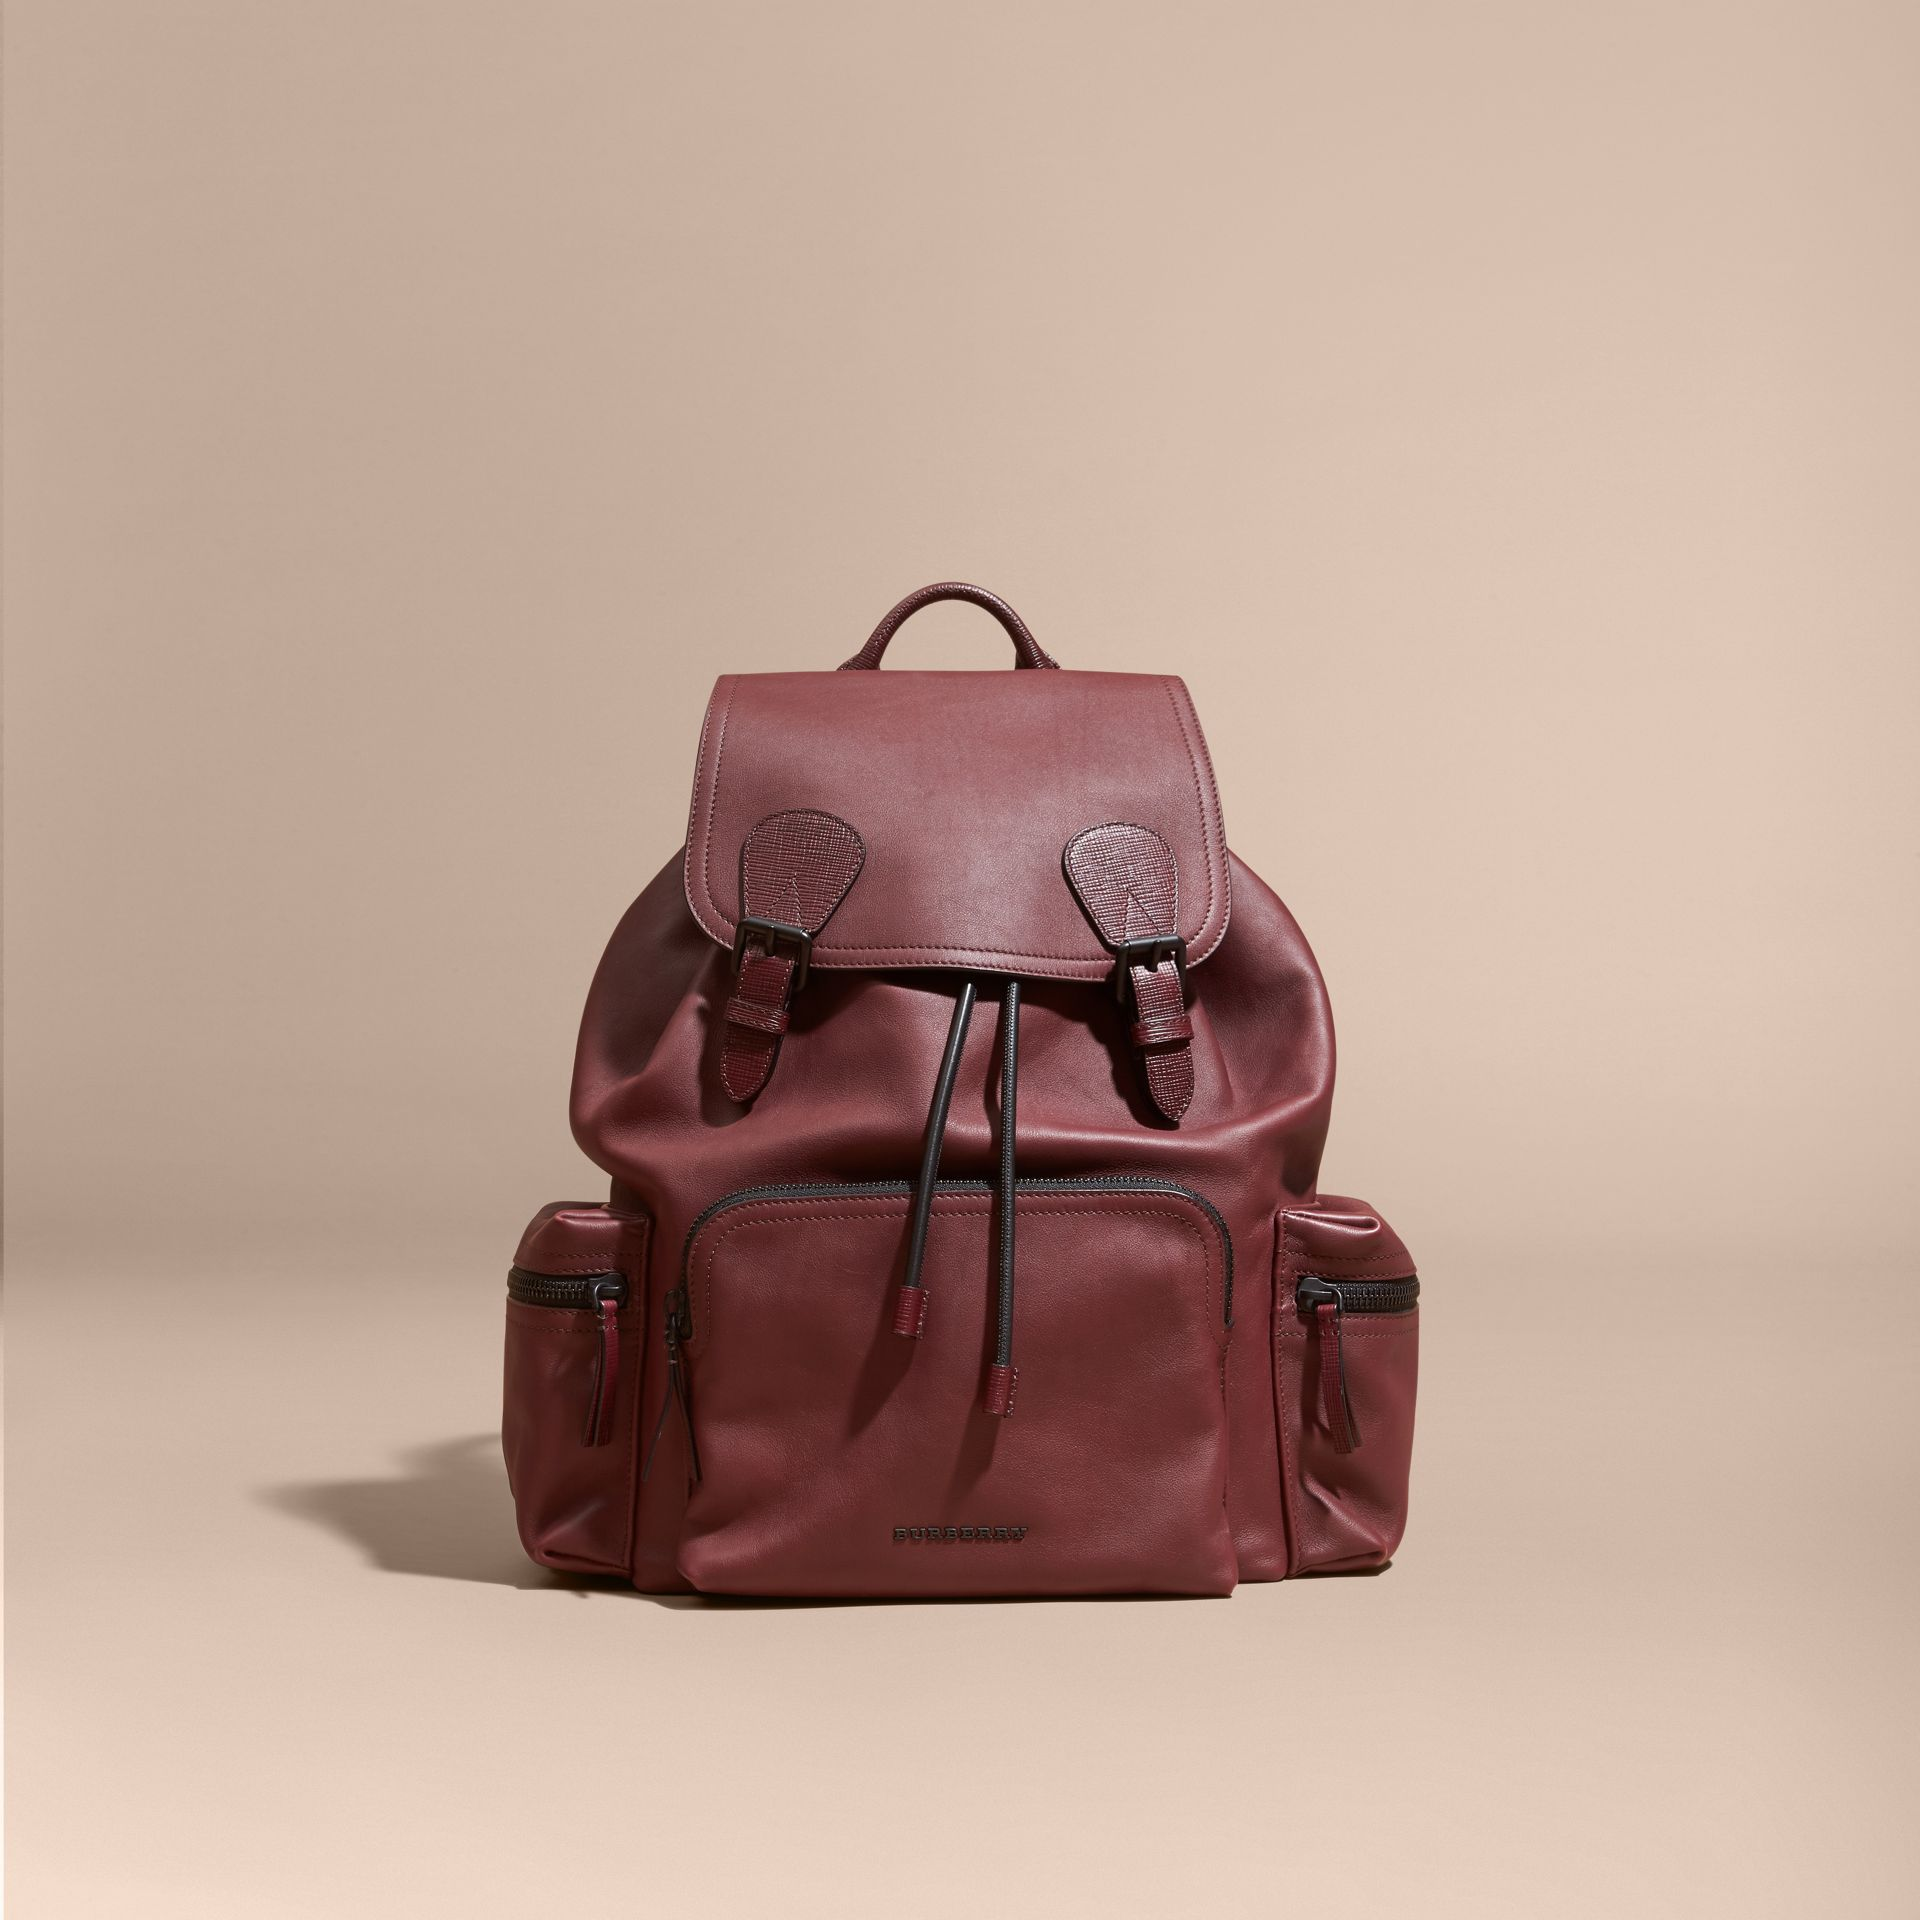 Burgundy red The Large Rucksack in Water-repellent Leather Burgundy Red - gallery image 2